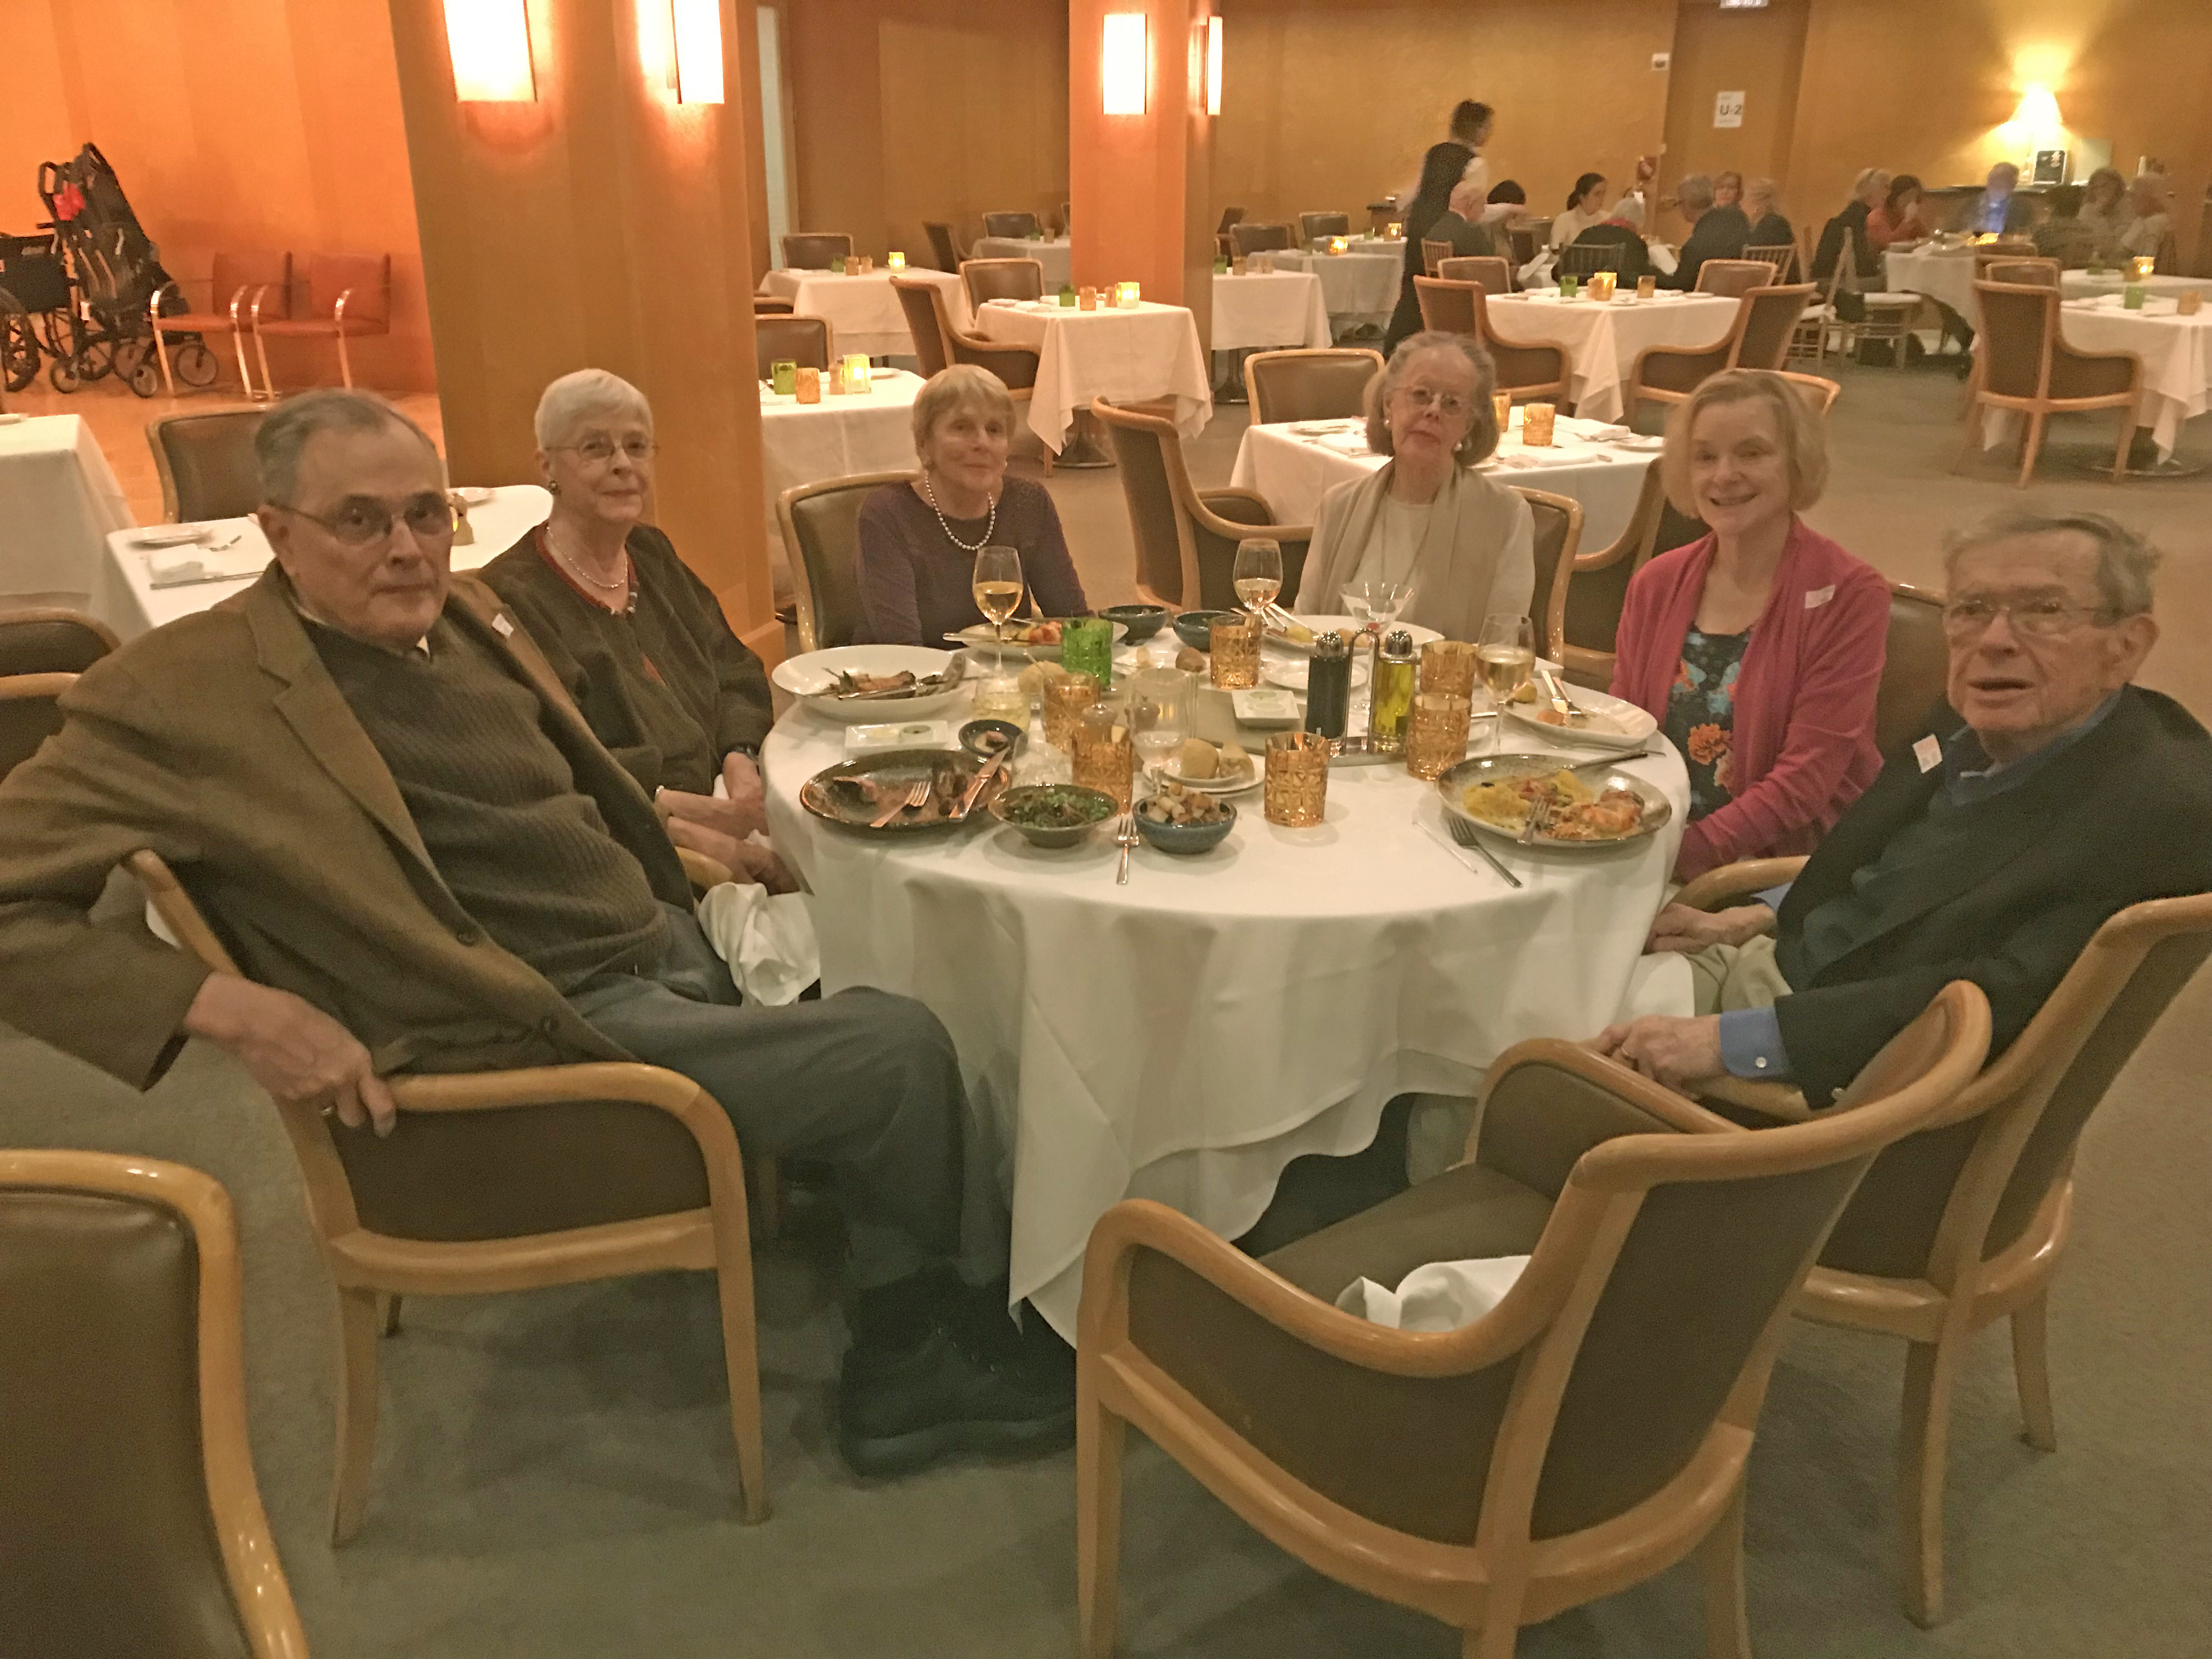 Dinner after the tour in the Members Dining Room